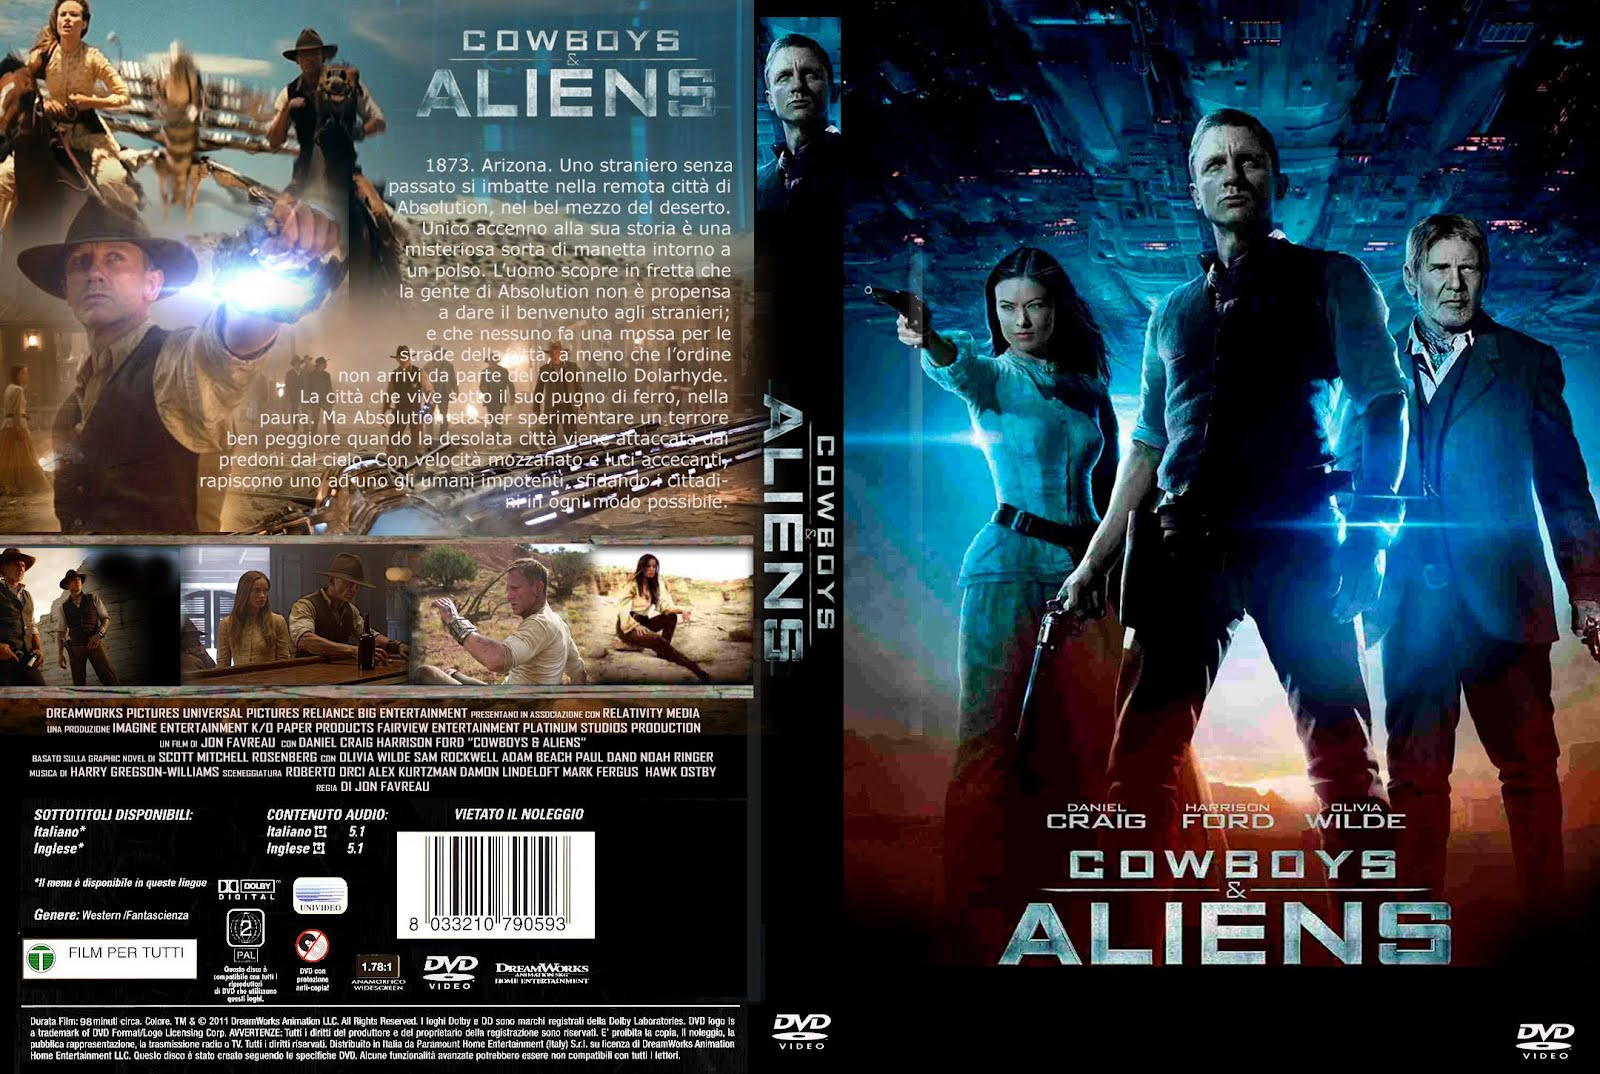 cowboys & aliens 2011 hindi dubbed watch online